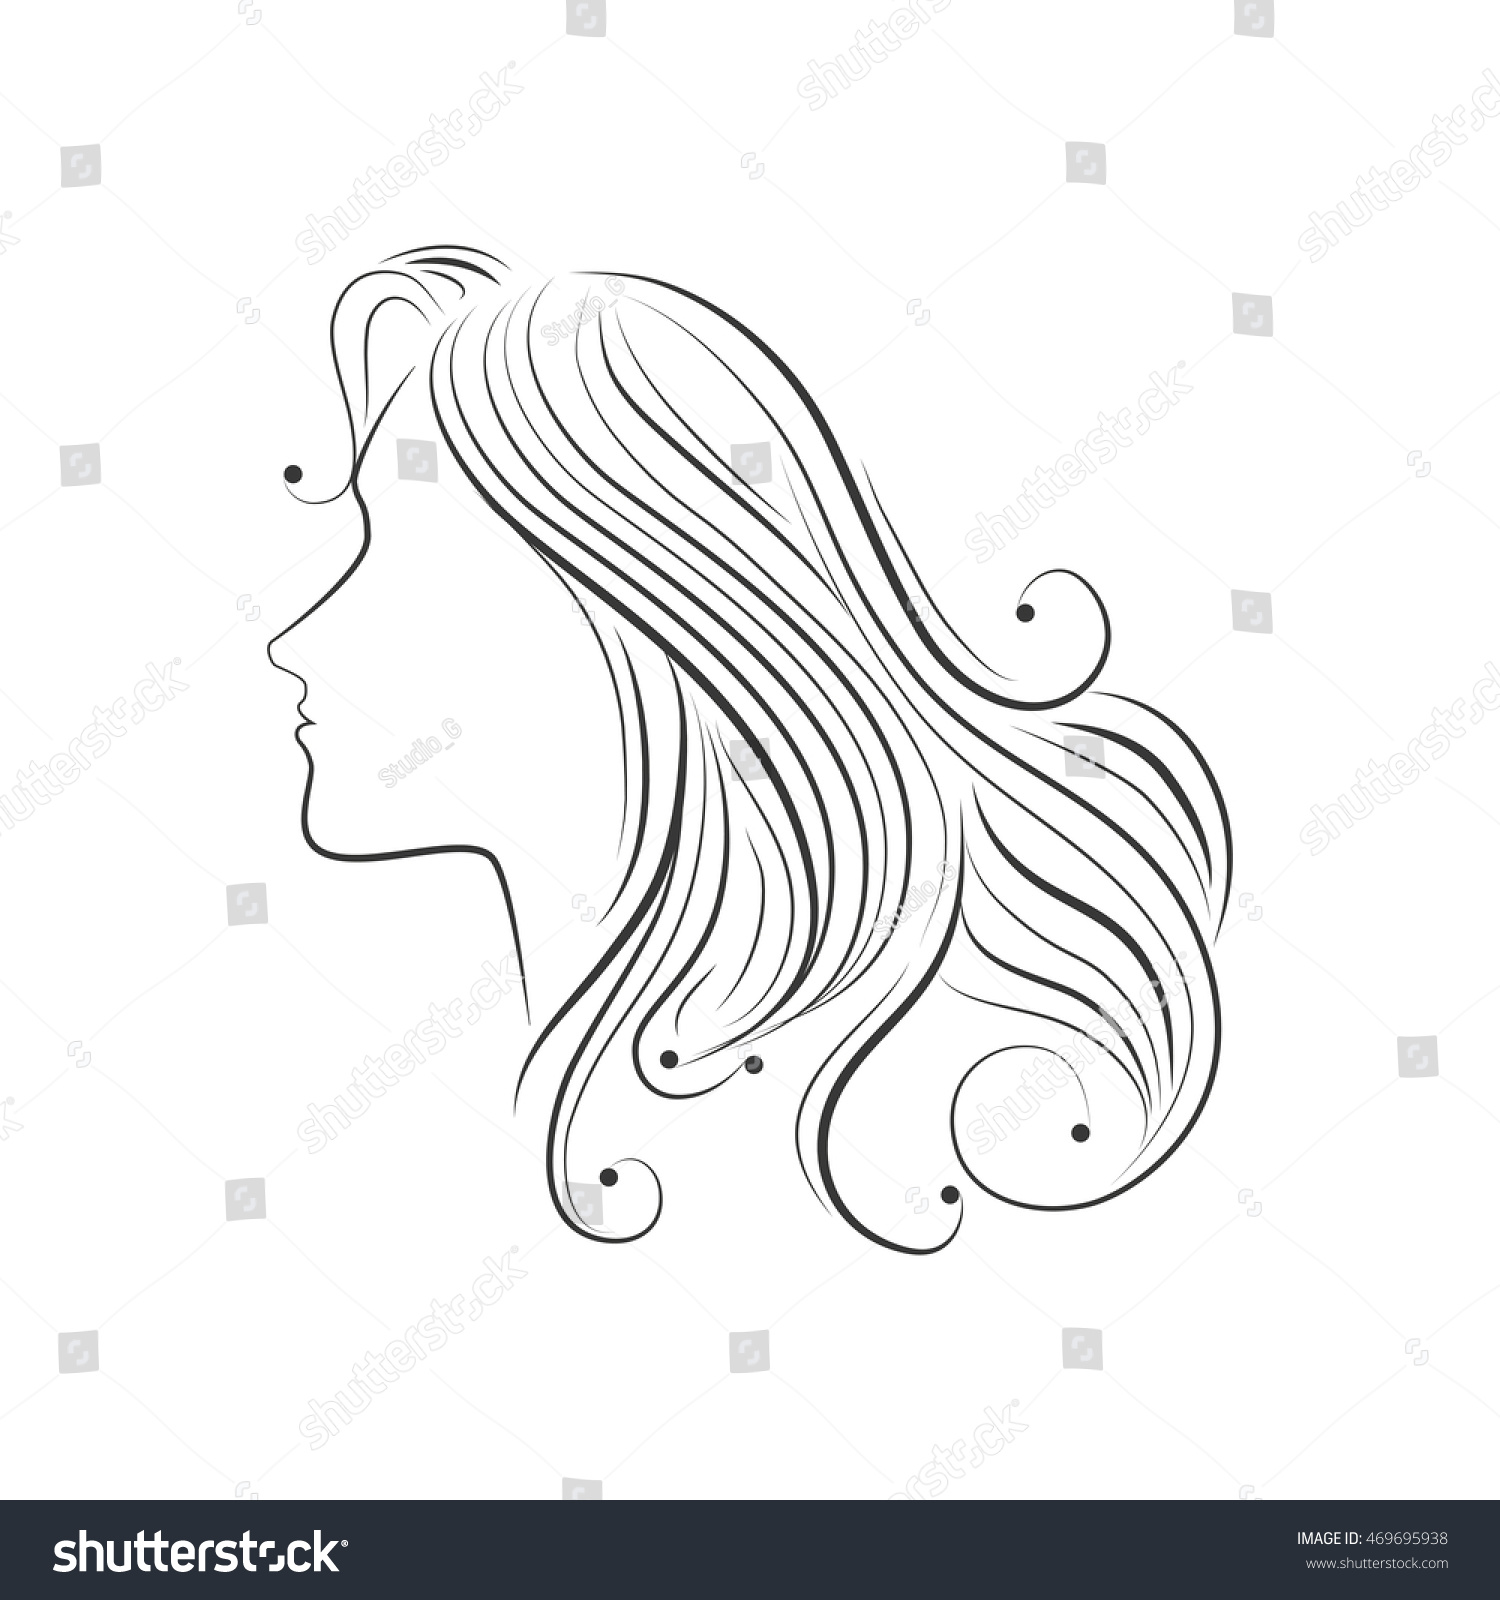 Hair sketch female side girl lady face woman beauty vector illustration isolated